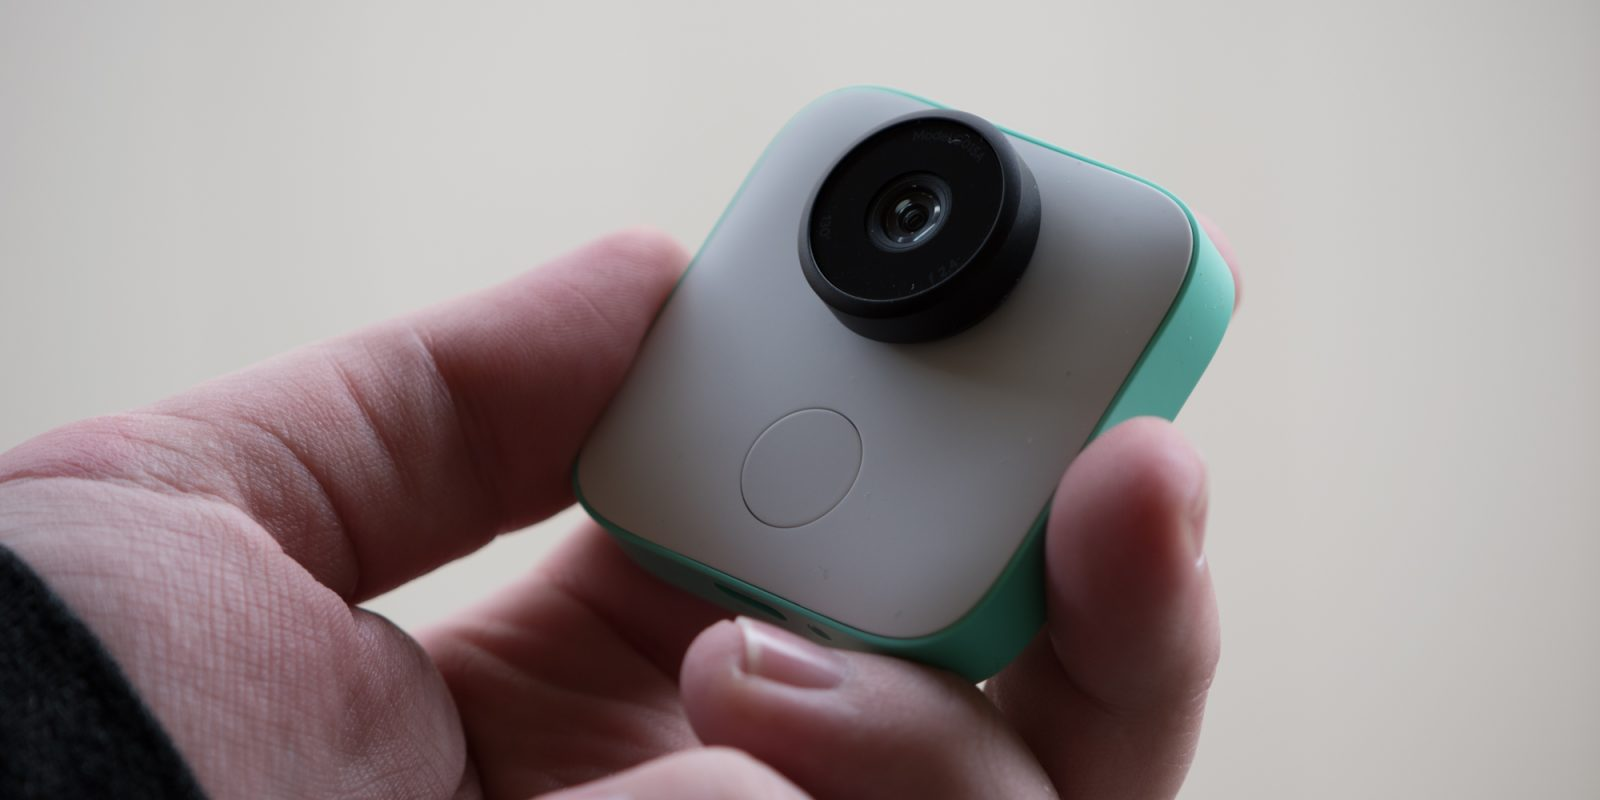 RIP Google Clips, you weird little automatic camera